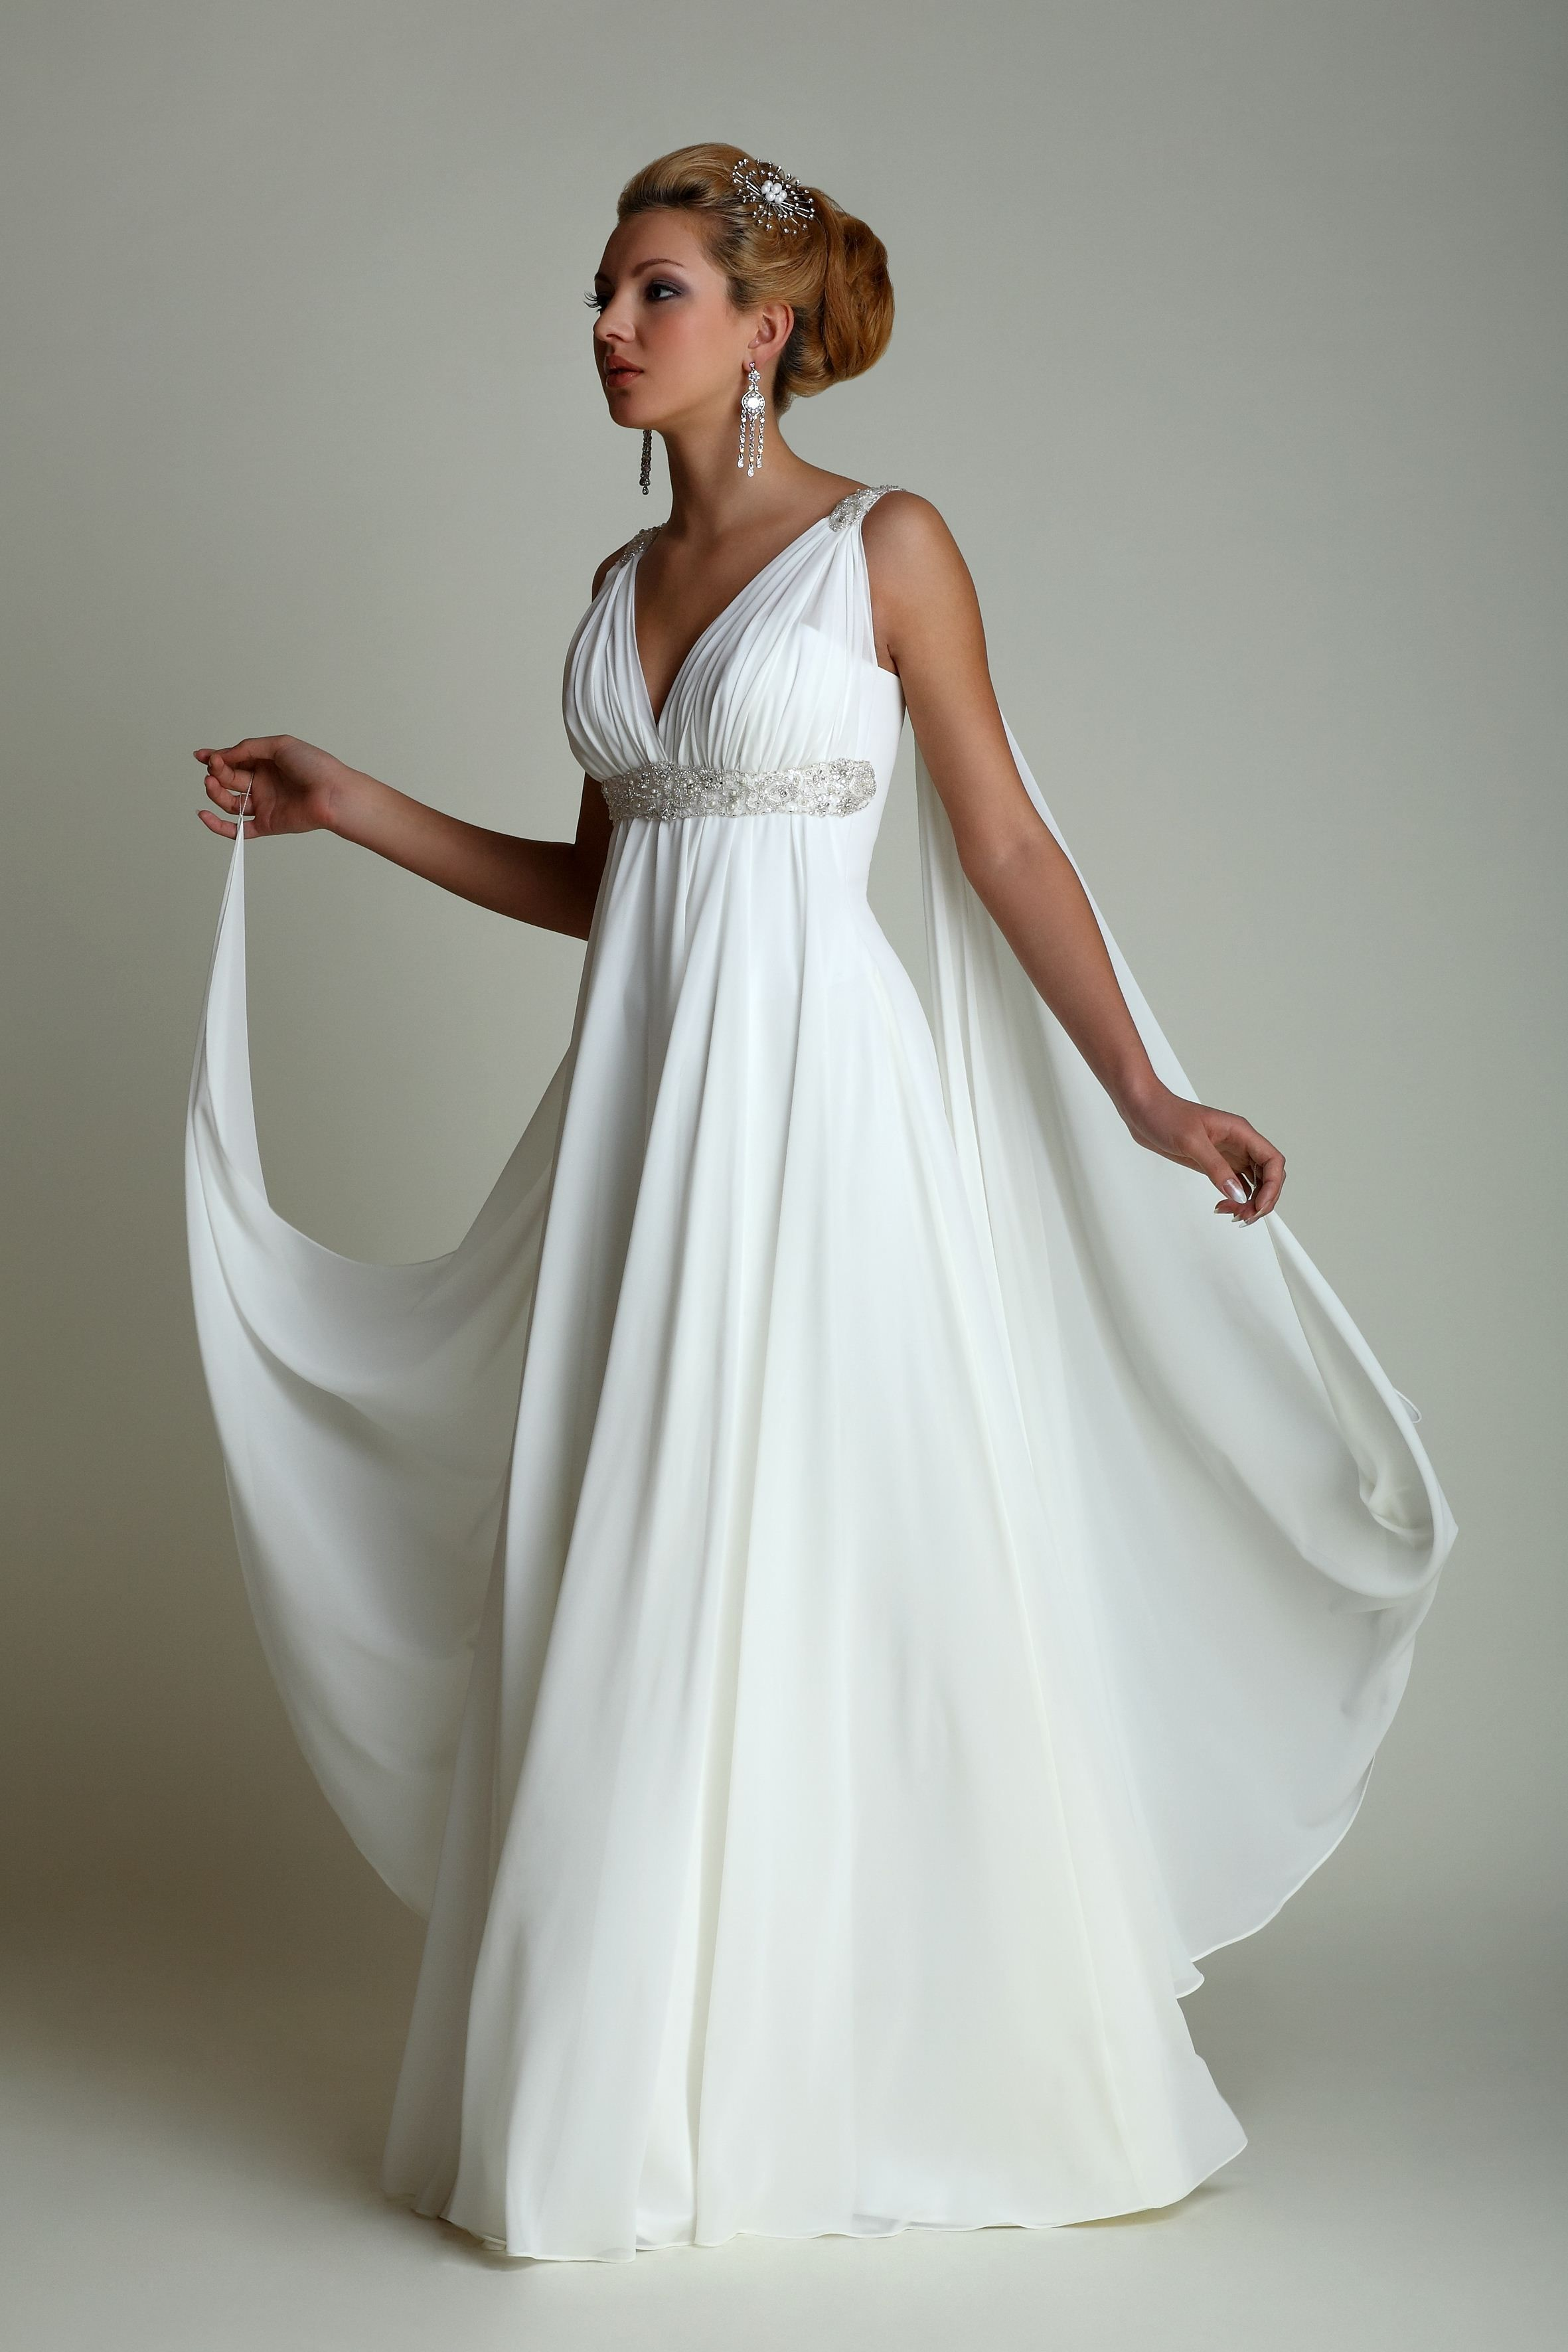 grecian style wedding dress wedding dresses on suit groom 4604